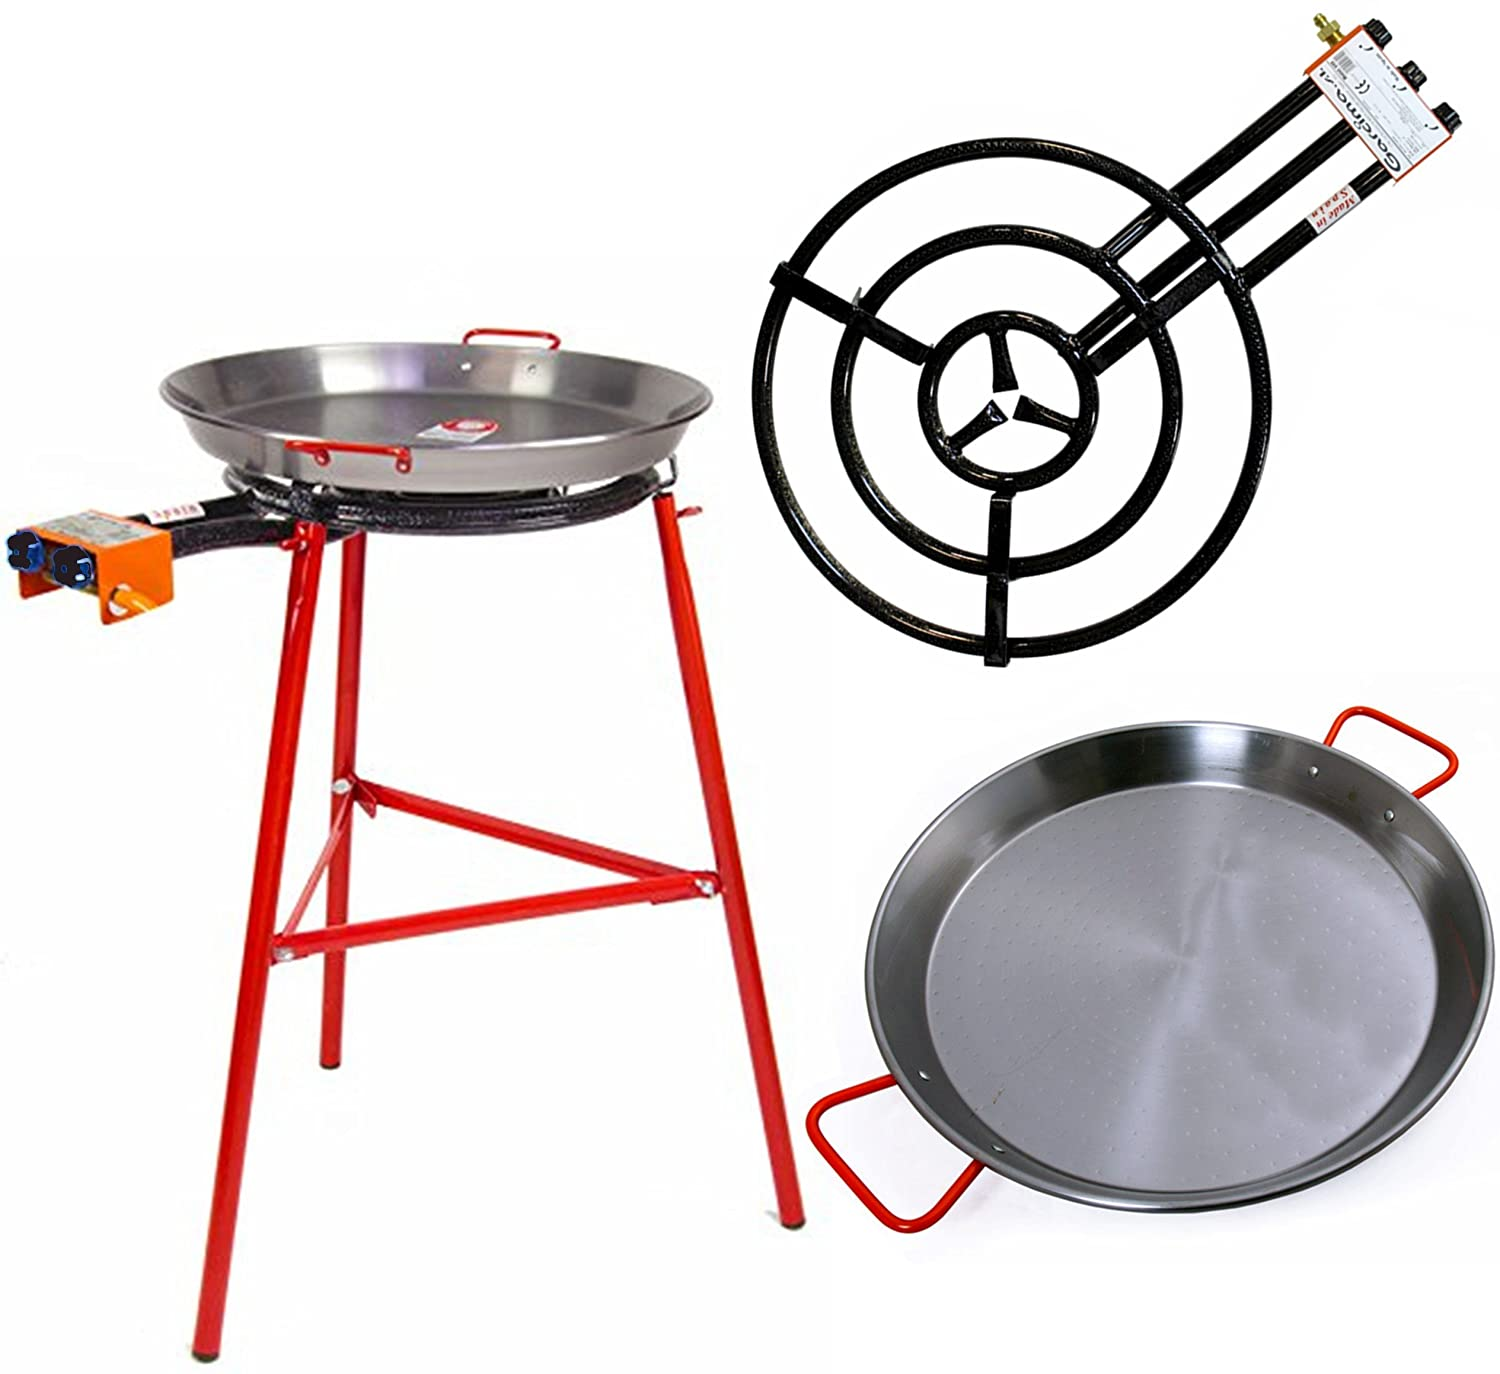 Paella Pan + Paella Burner and Stand Set - Complete Paella Kit for up to 22 Servings